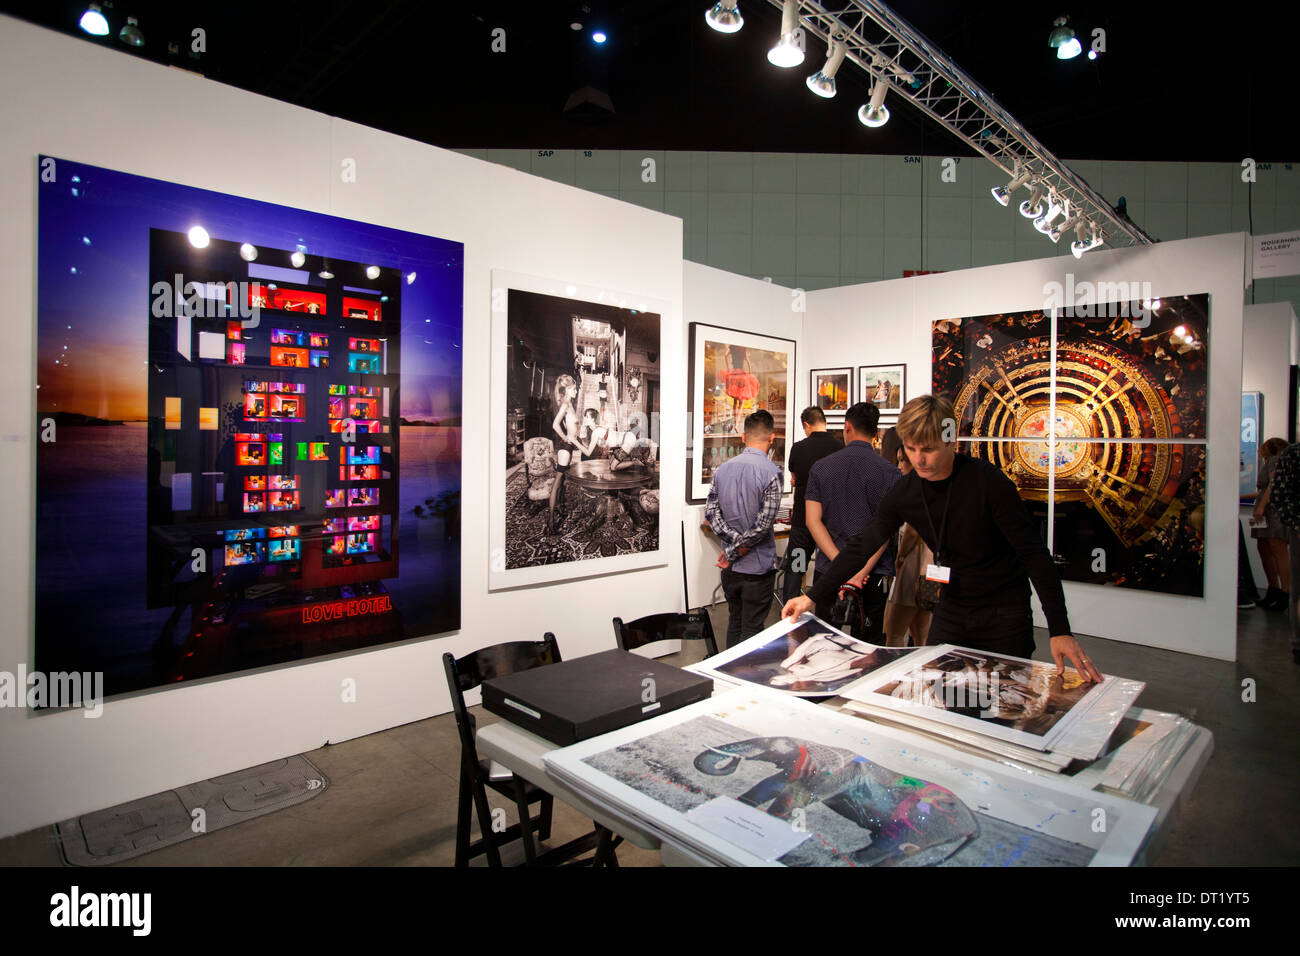 Stock Photo - Vendor in his booth, Los Angeles Art Show 2014, Los Angeles, California, United States of America